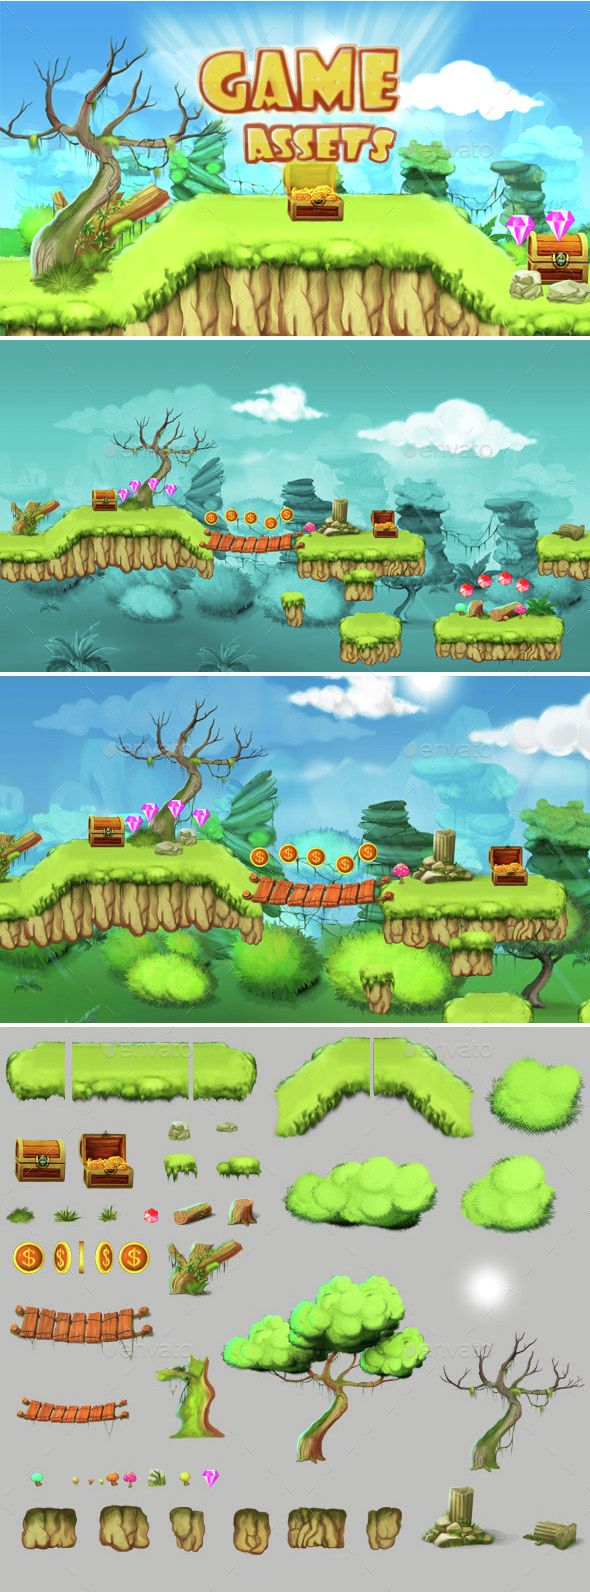 2D Tileset Platform Game — Photoshop PSD #sprite #assets • Available here → https://graphicriver.net/item/2d-tileset-platform-game-/14544412?ref=pxcr